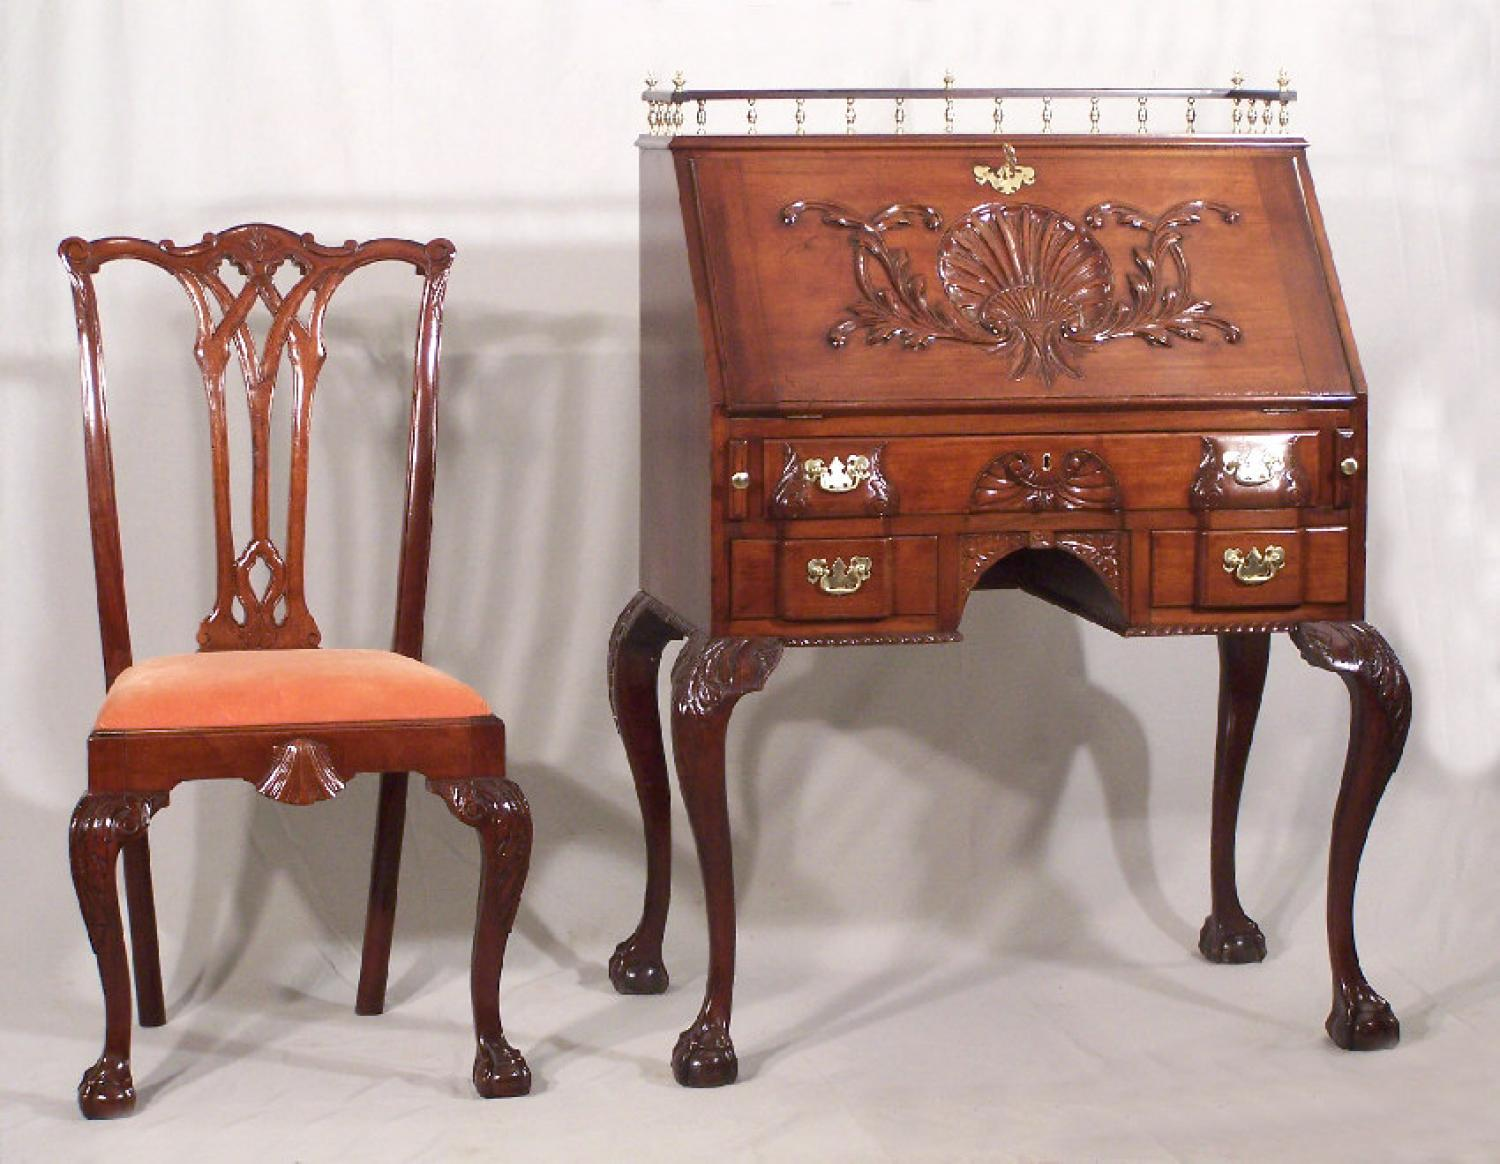 Centennial Chippendale style desk and chair c1875